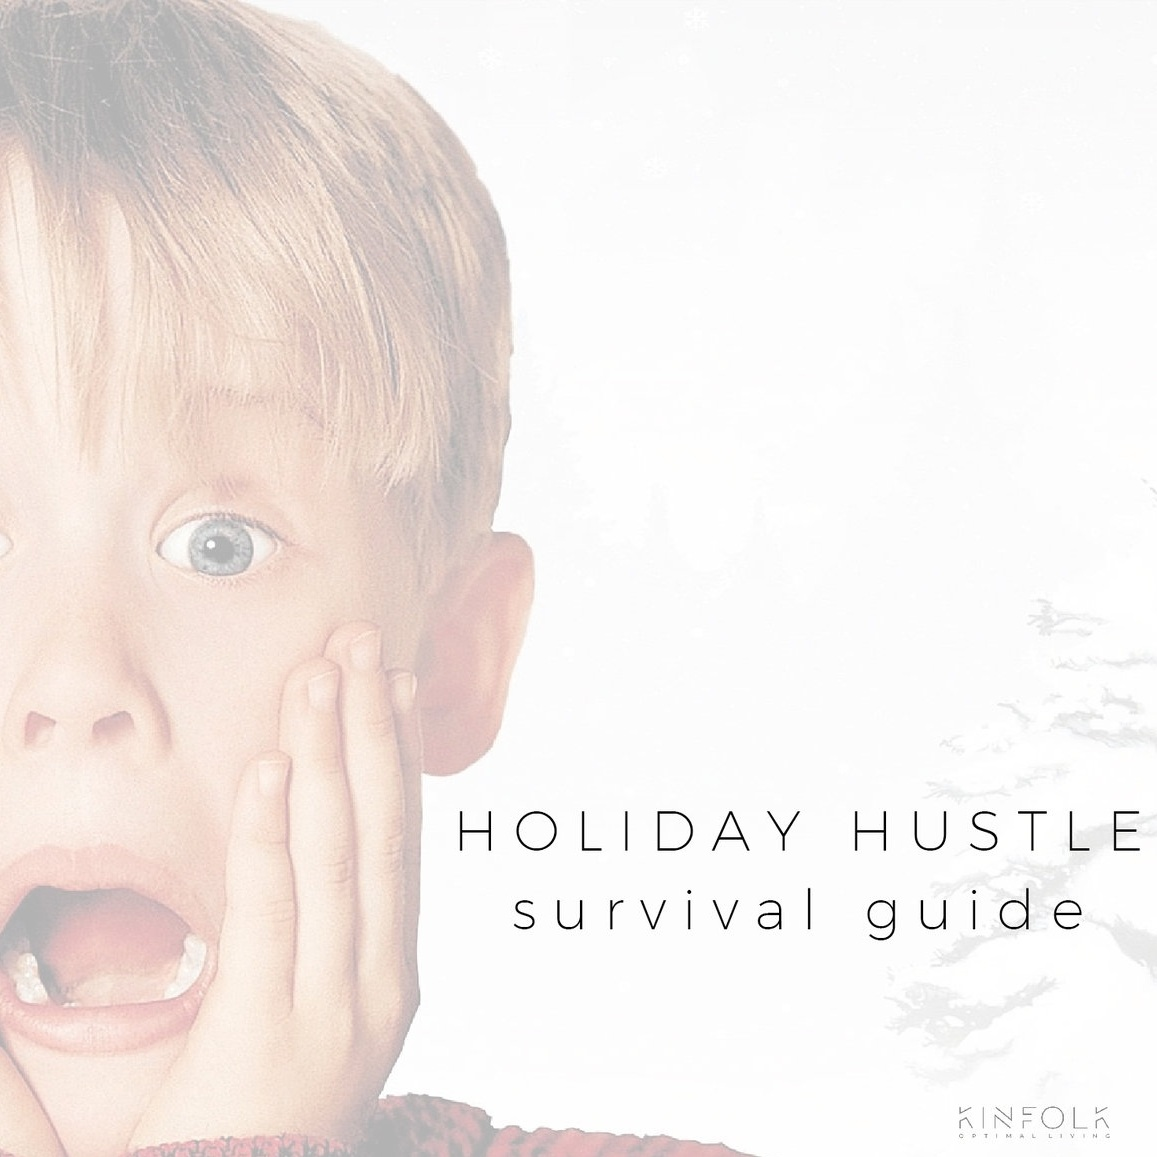 8 TIPS TO SURVIVE THE Holiday HUSTLE -